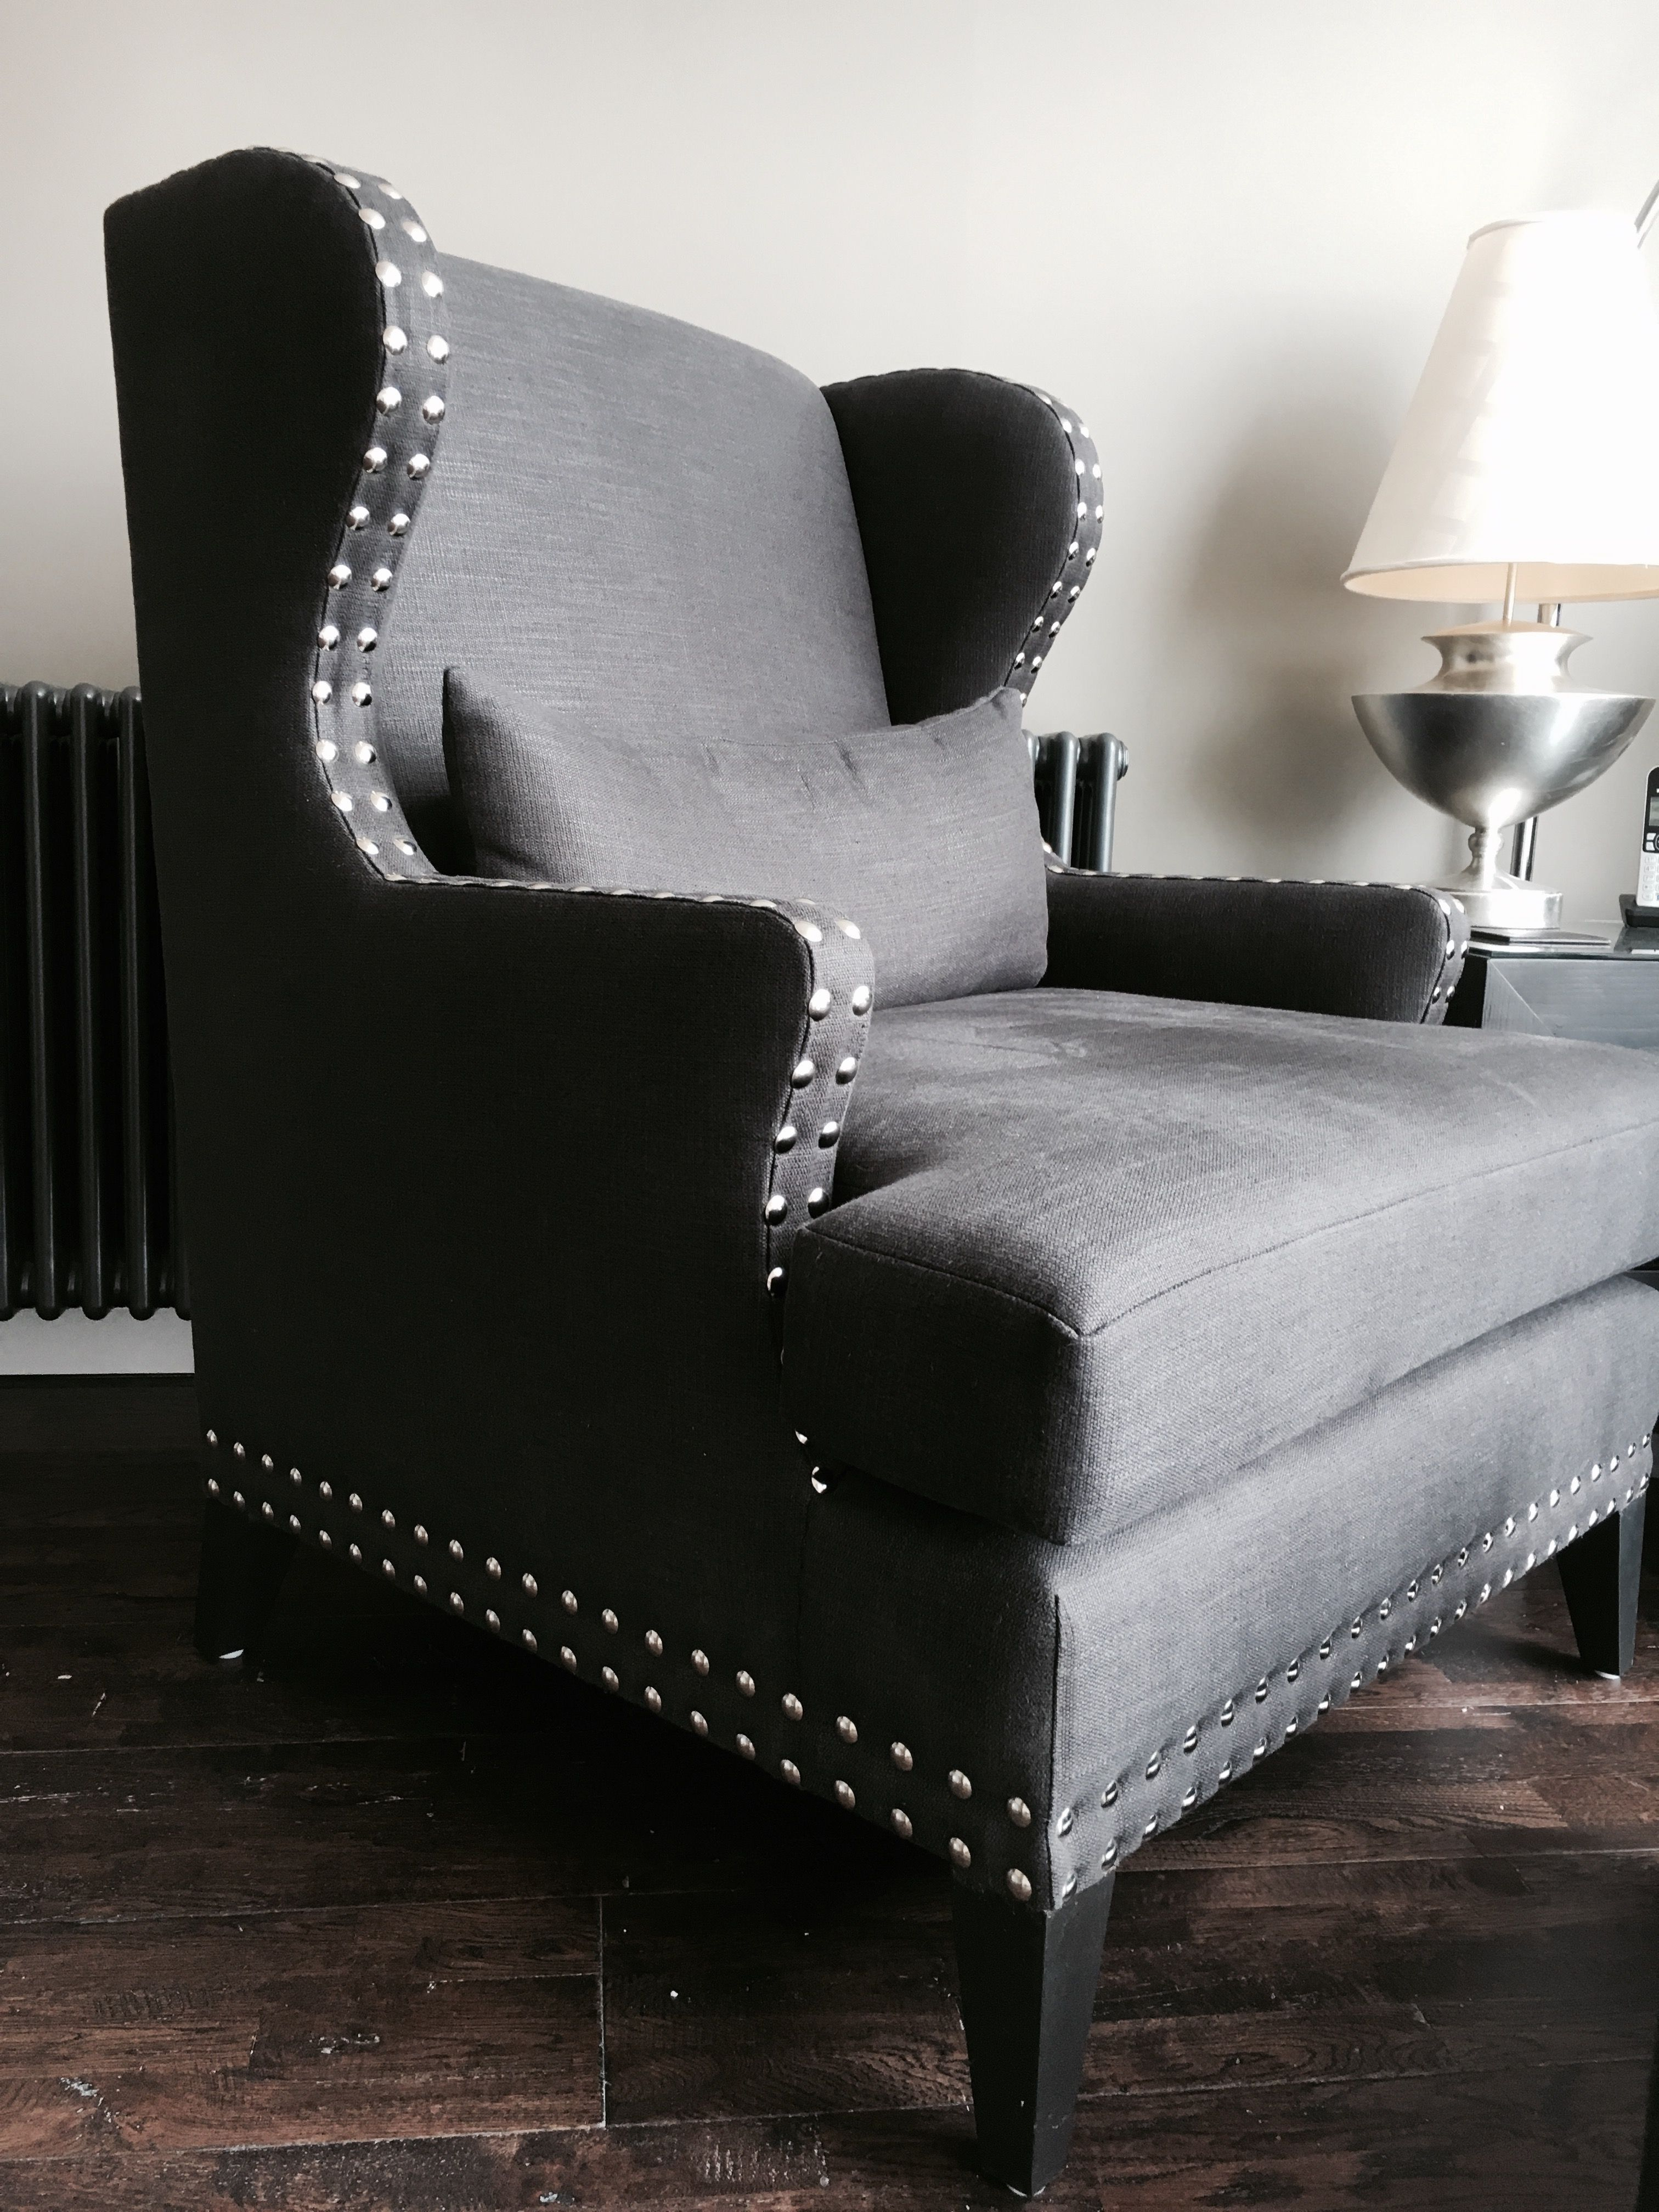 Bespoke Oversized Lounge Chair Featuring Silver Stud Detail U0026 Tapered Solid  Wood Legs.